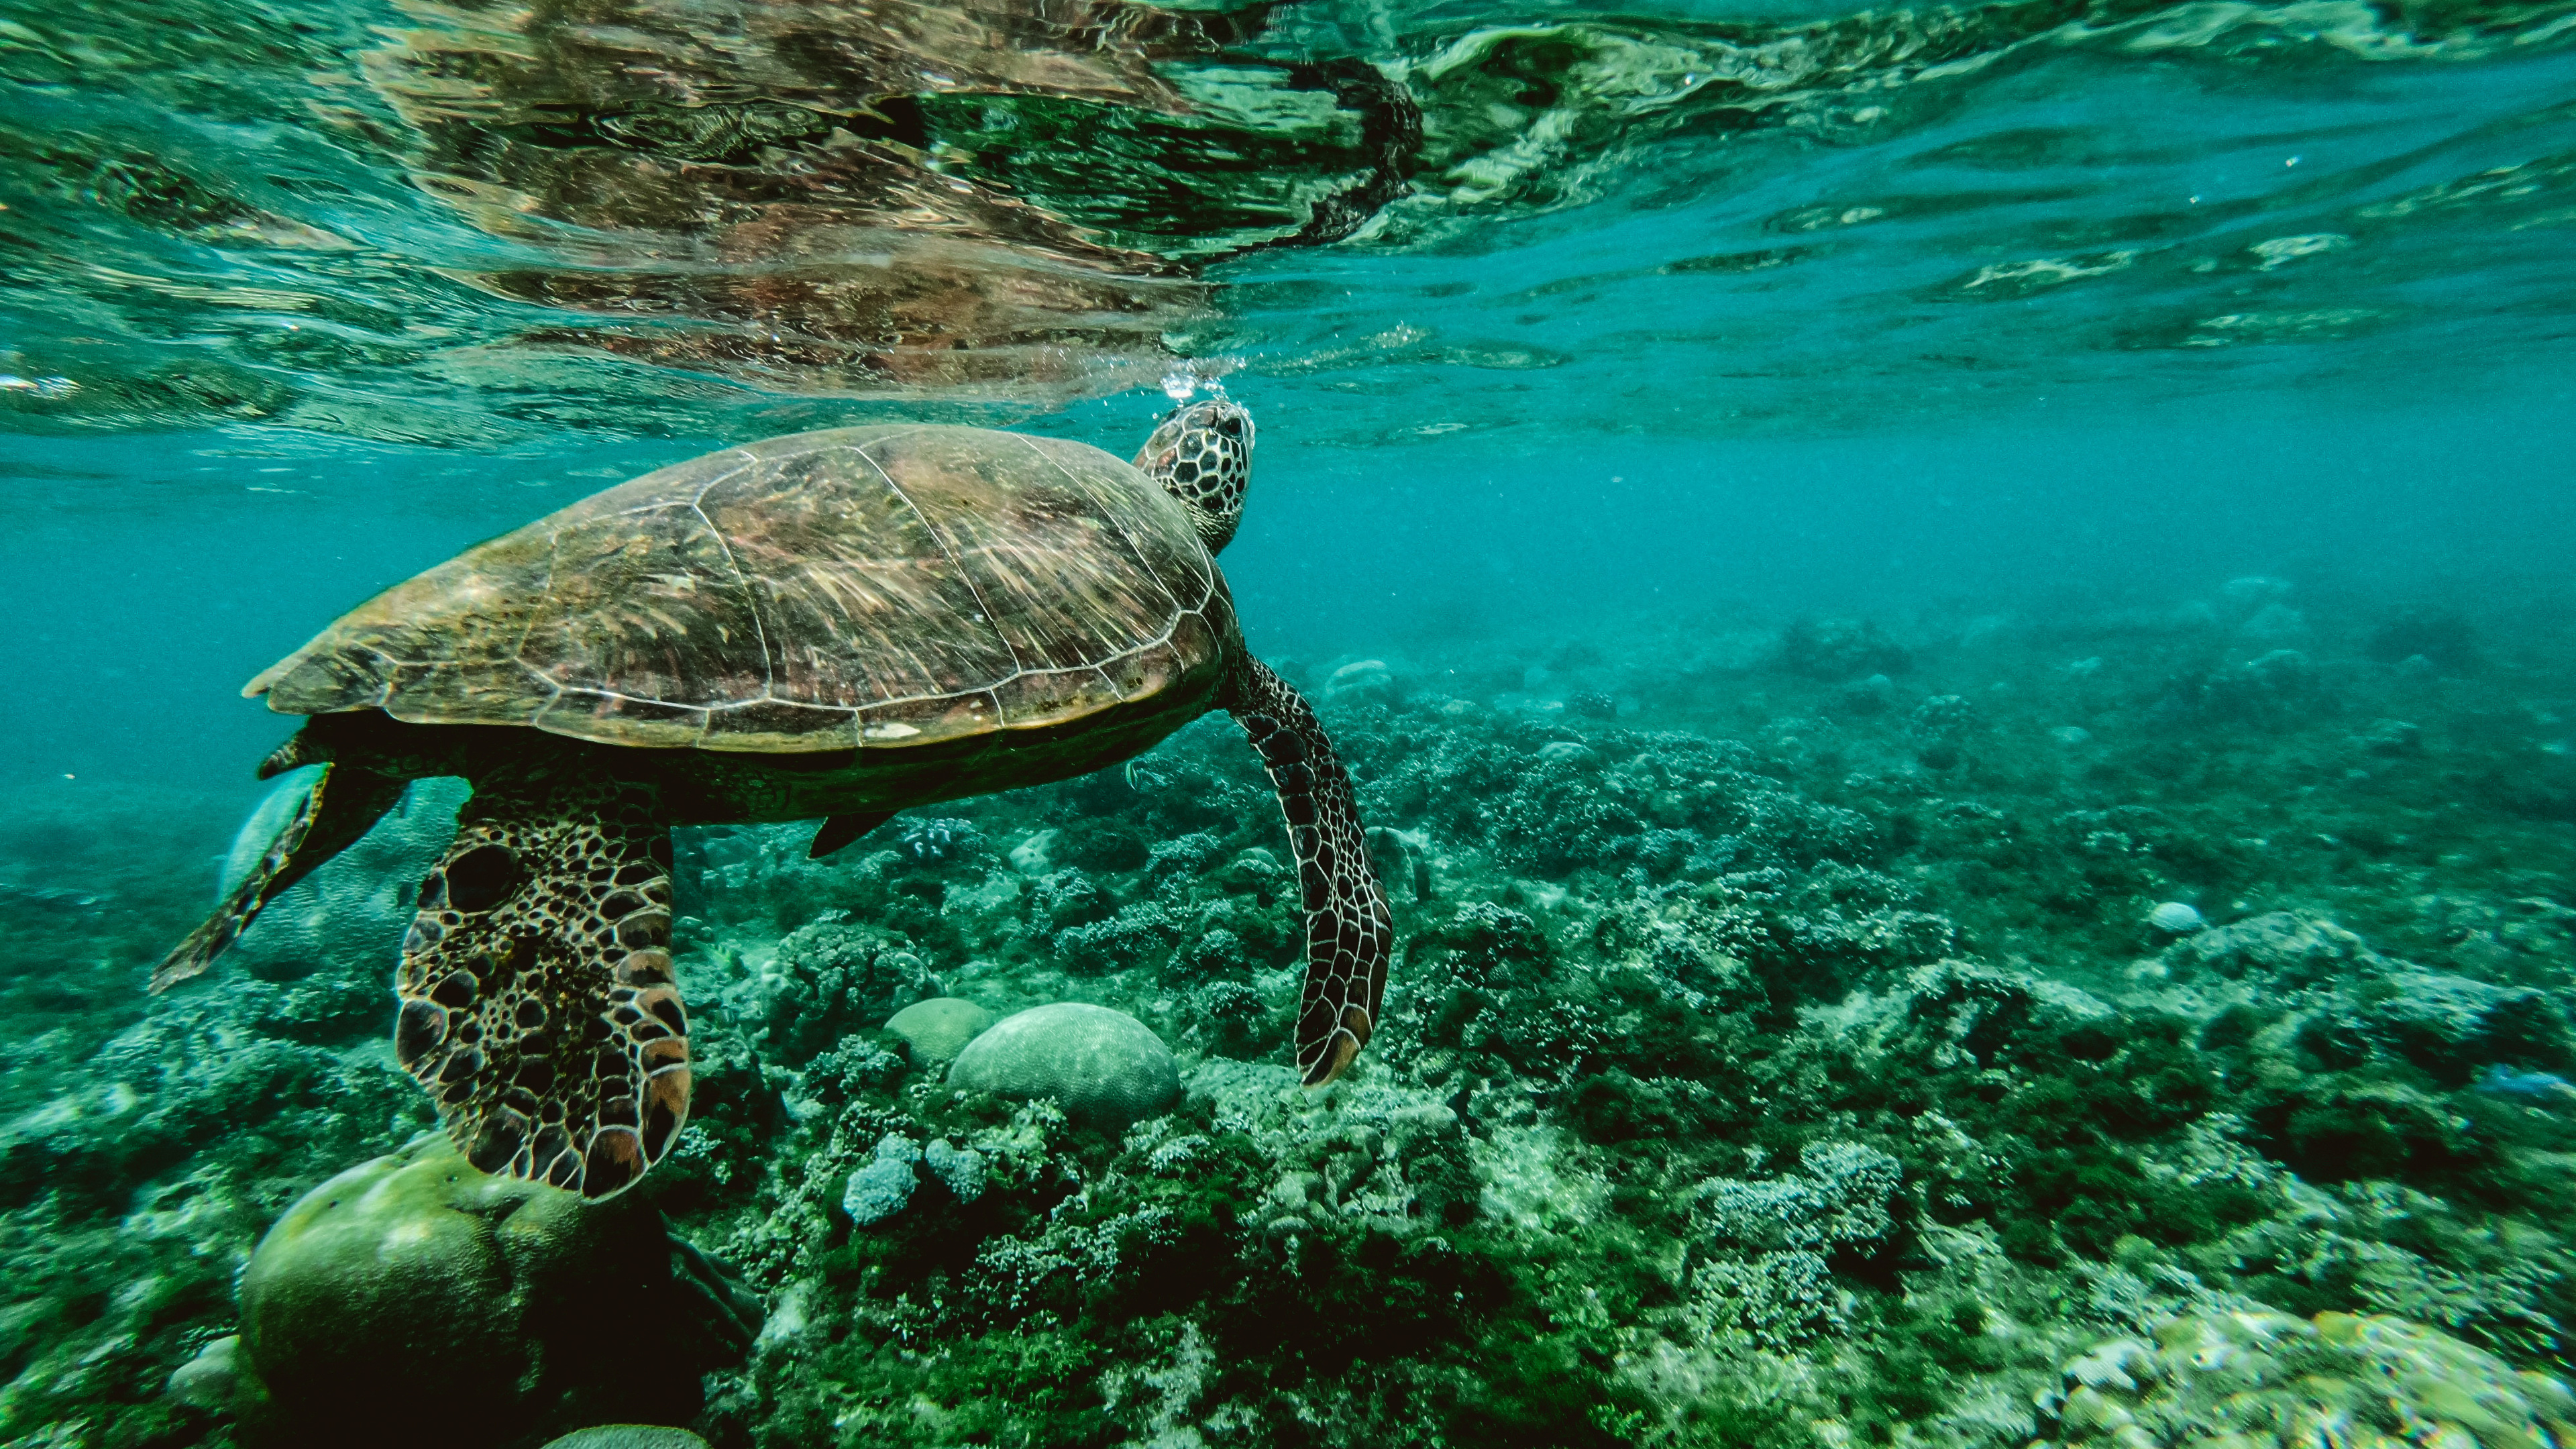 turtle underwater 1542238889 - Turtle Underwater - underwater wallpapers, turtle wallpapers, sea wallpapers, reptile wallpapers, hd-wallpapers, animals wallpapers, 4k-wallpapers